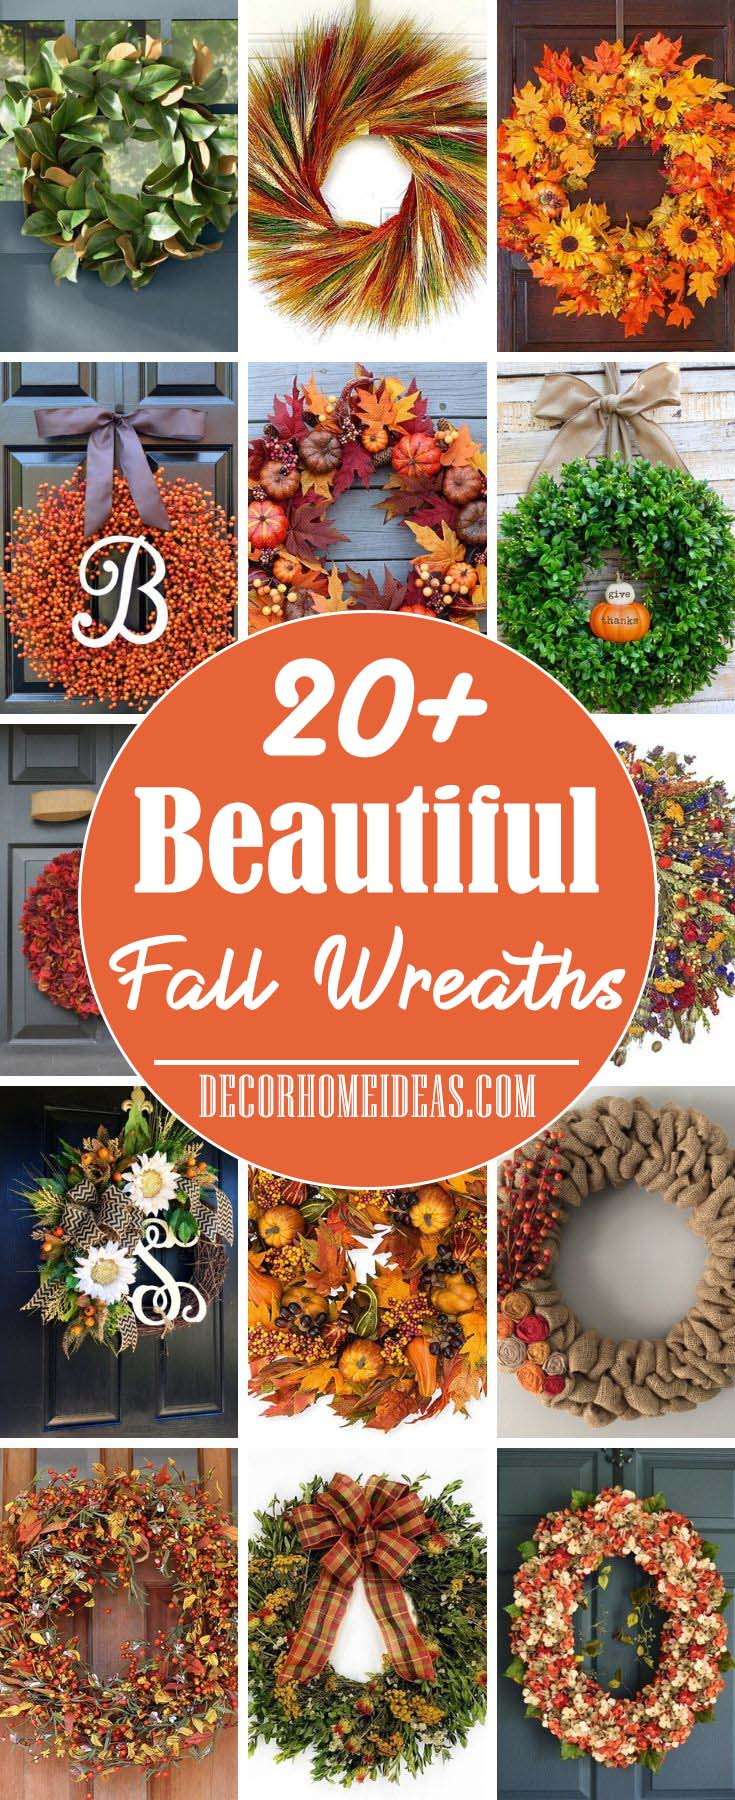 Best Fall Wreath Ideas #wreath #falldecor #fallwreath #falldecoration #decorhomeideas